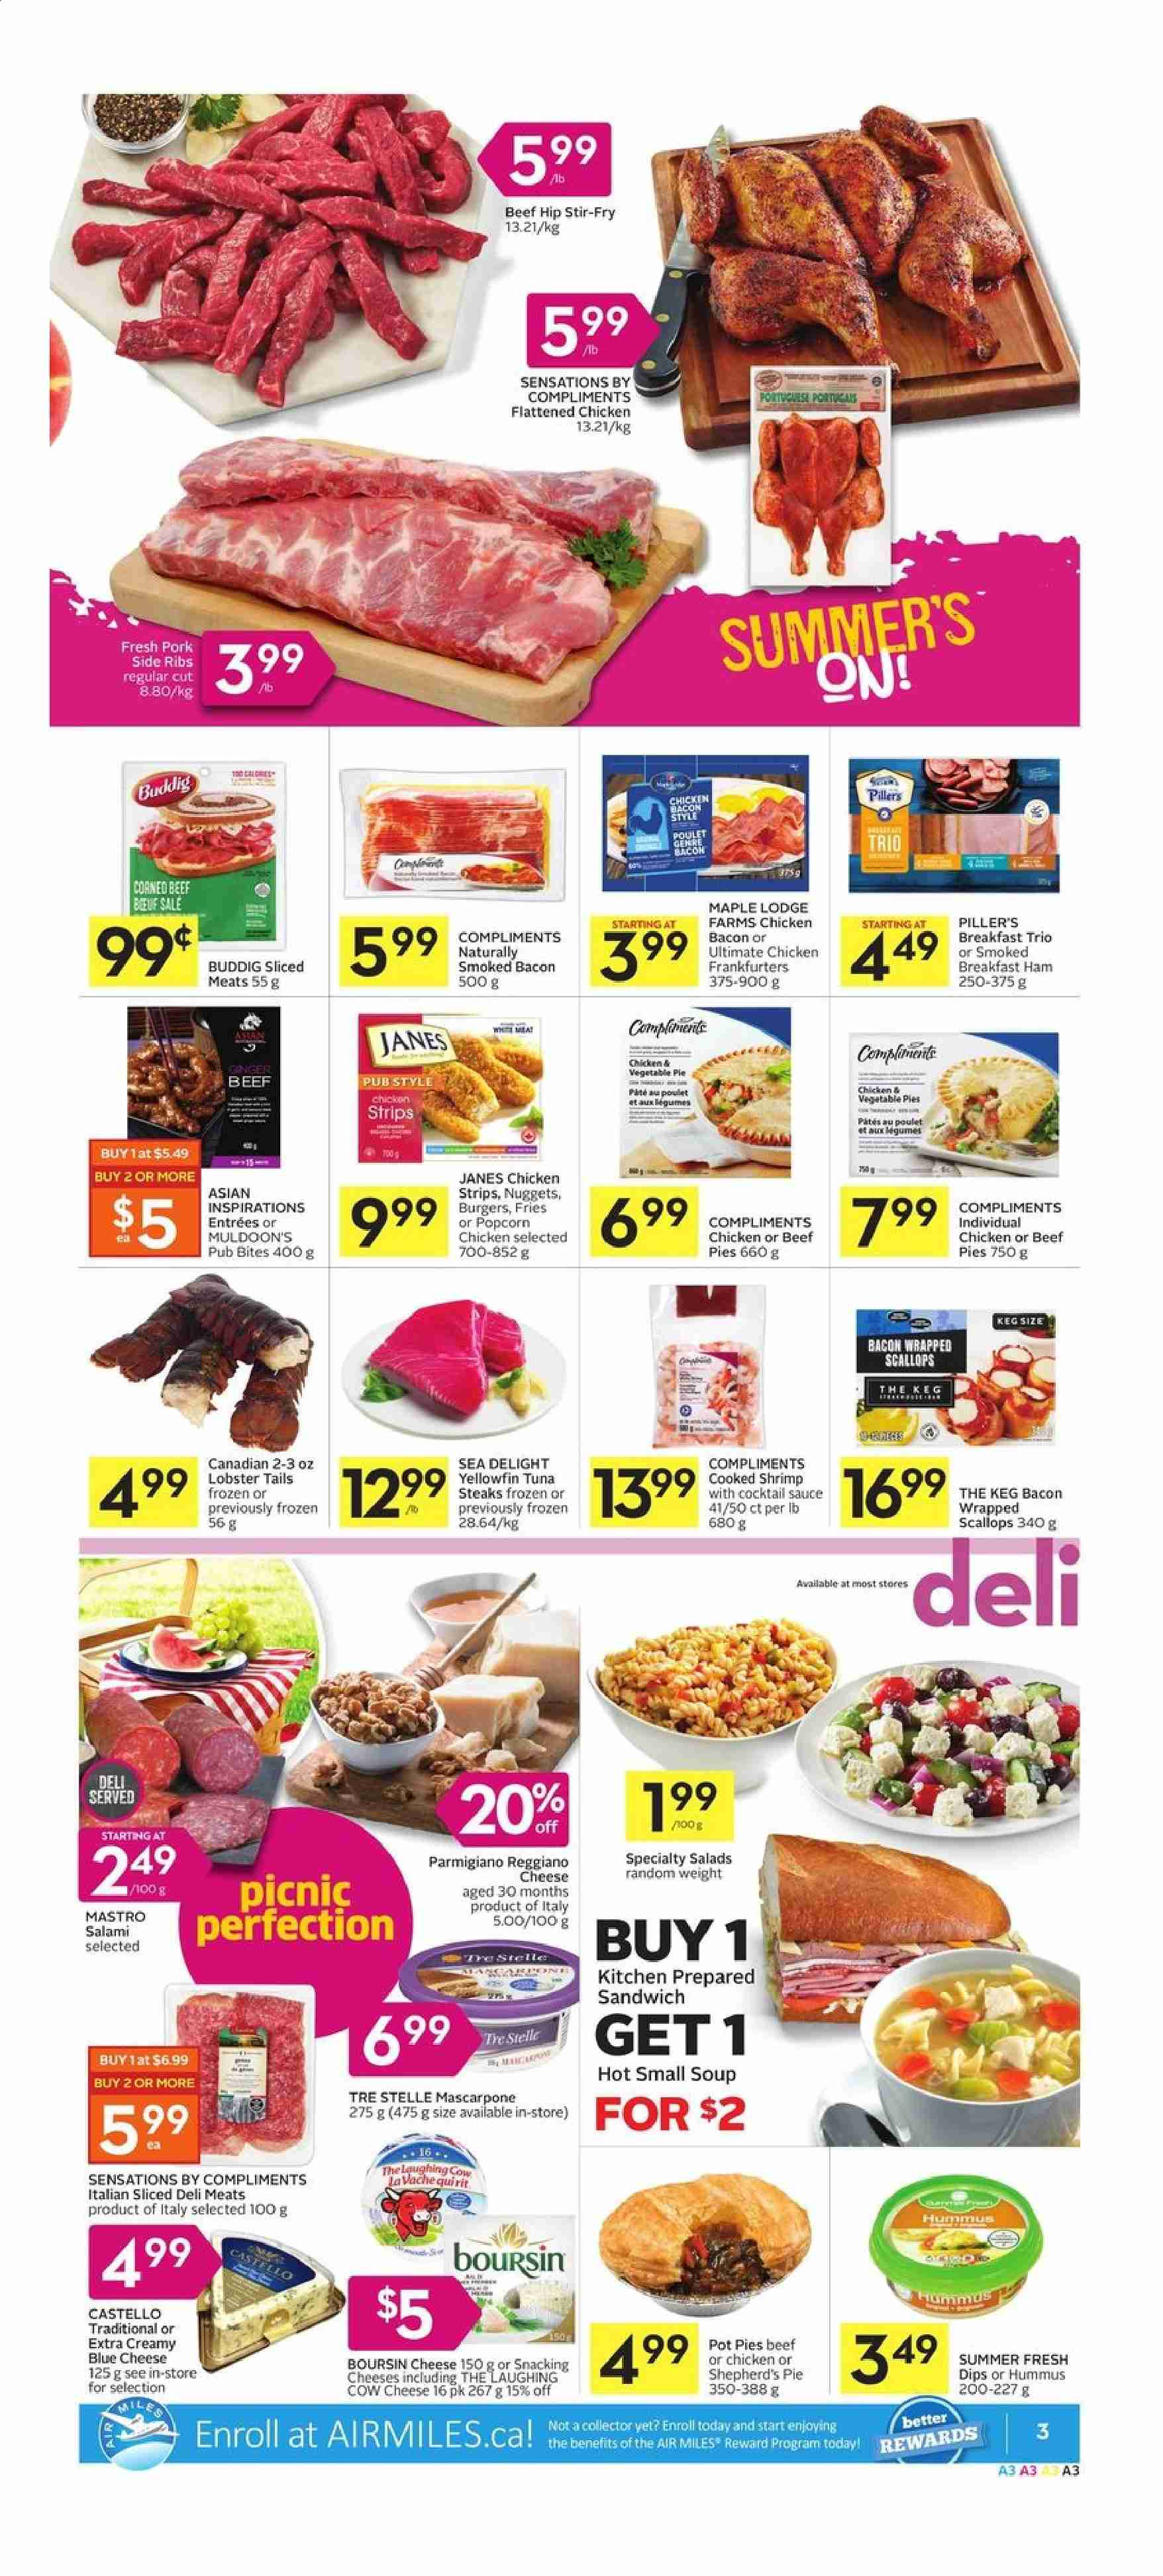 Foodland Flyer  - August 22, 2019 - August 28, 2019. Page 3.